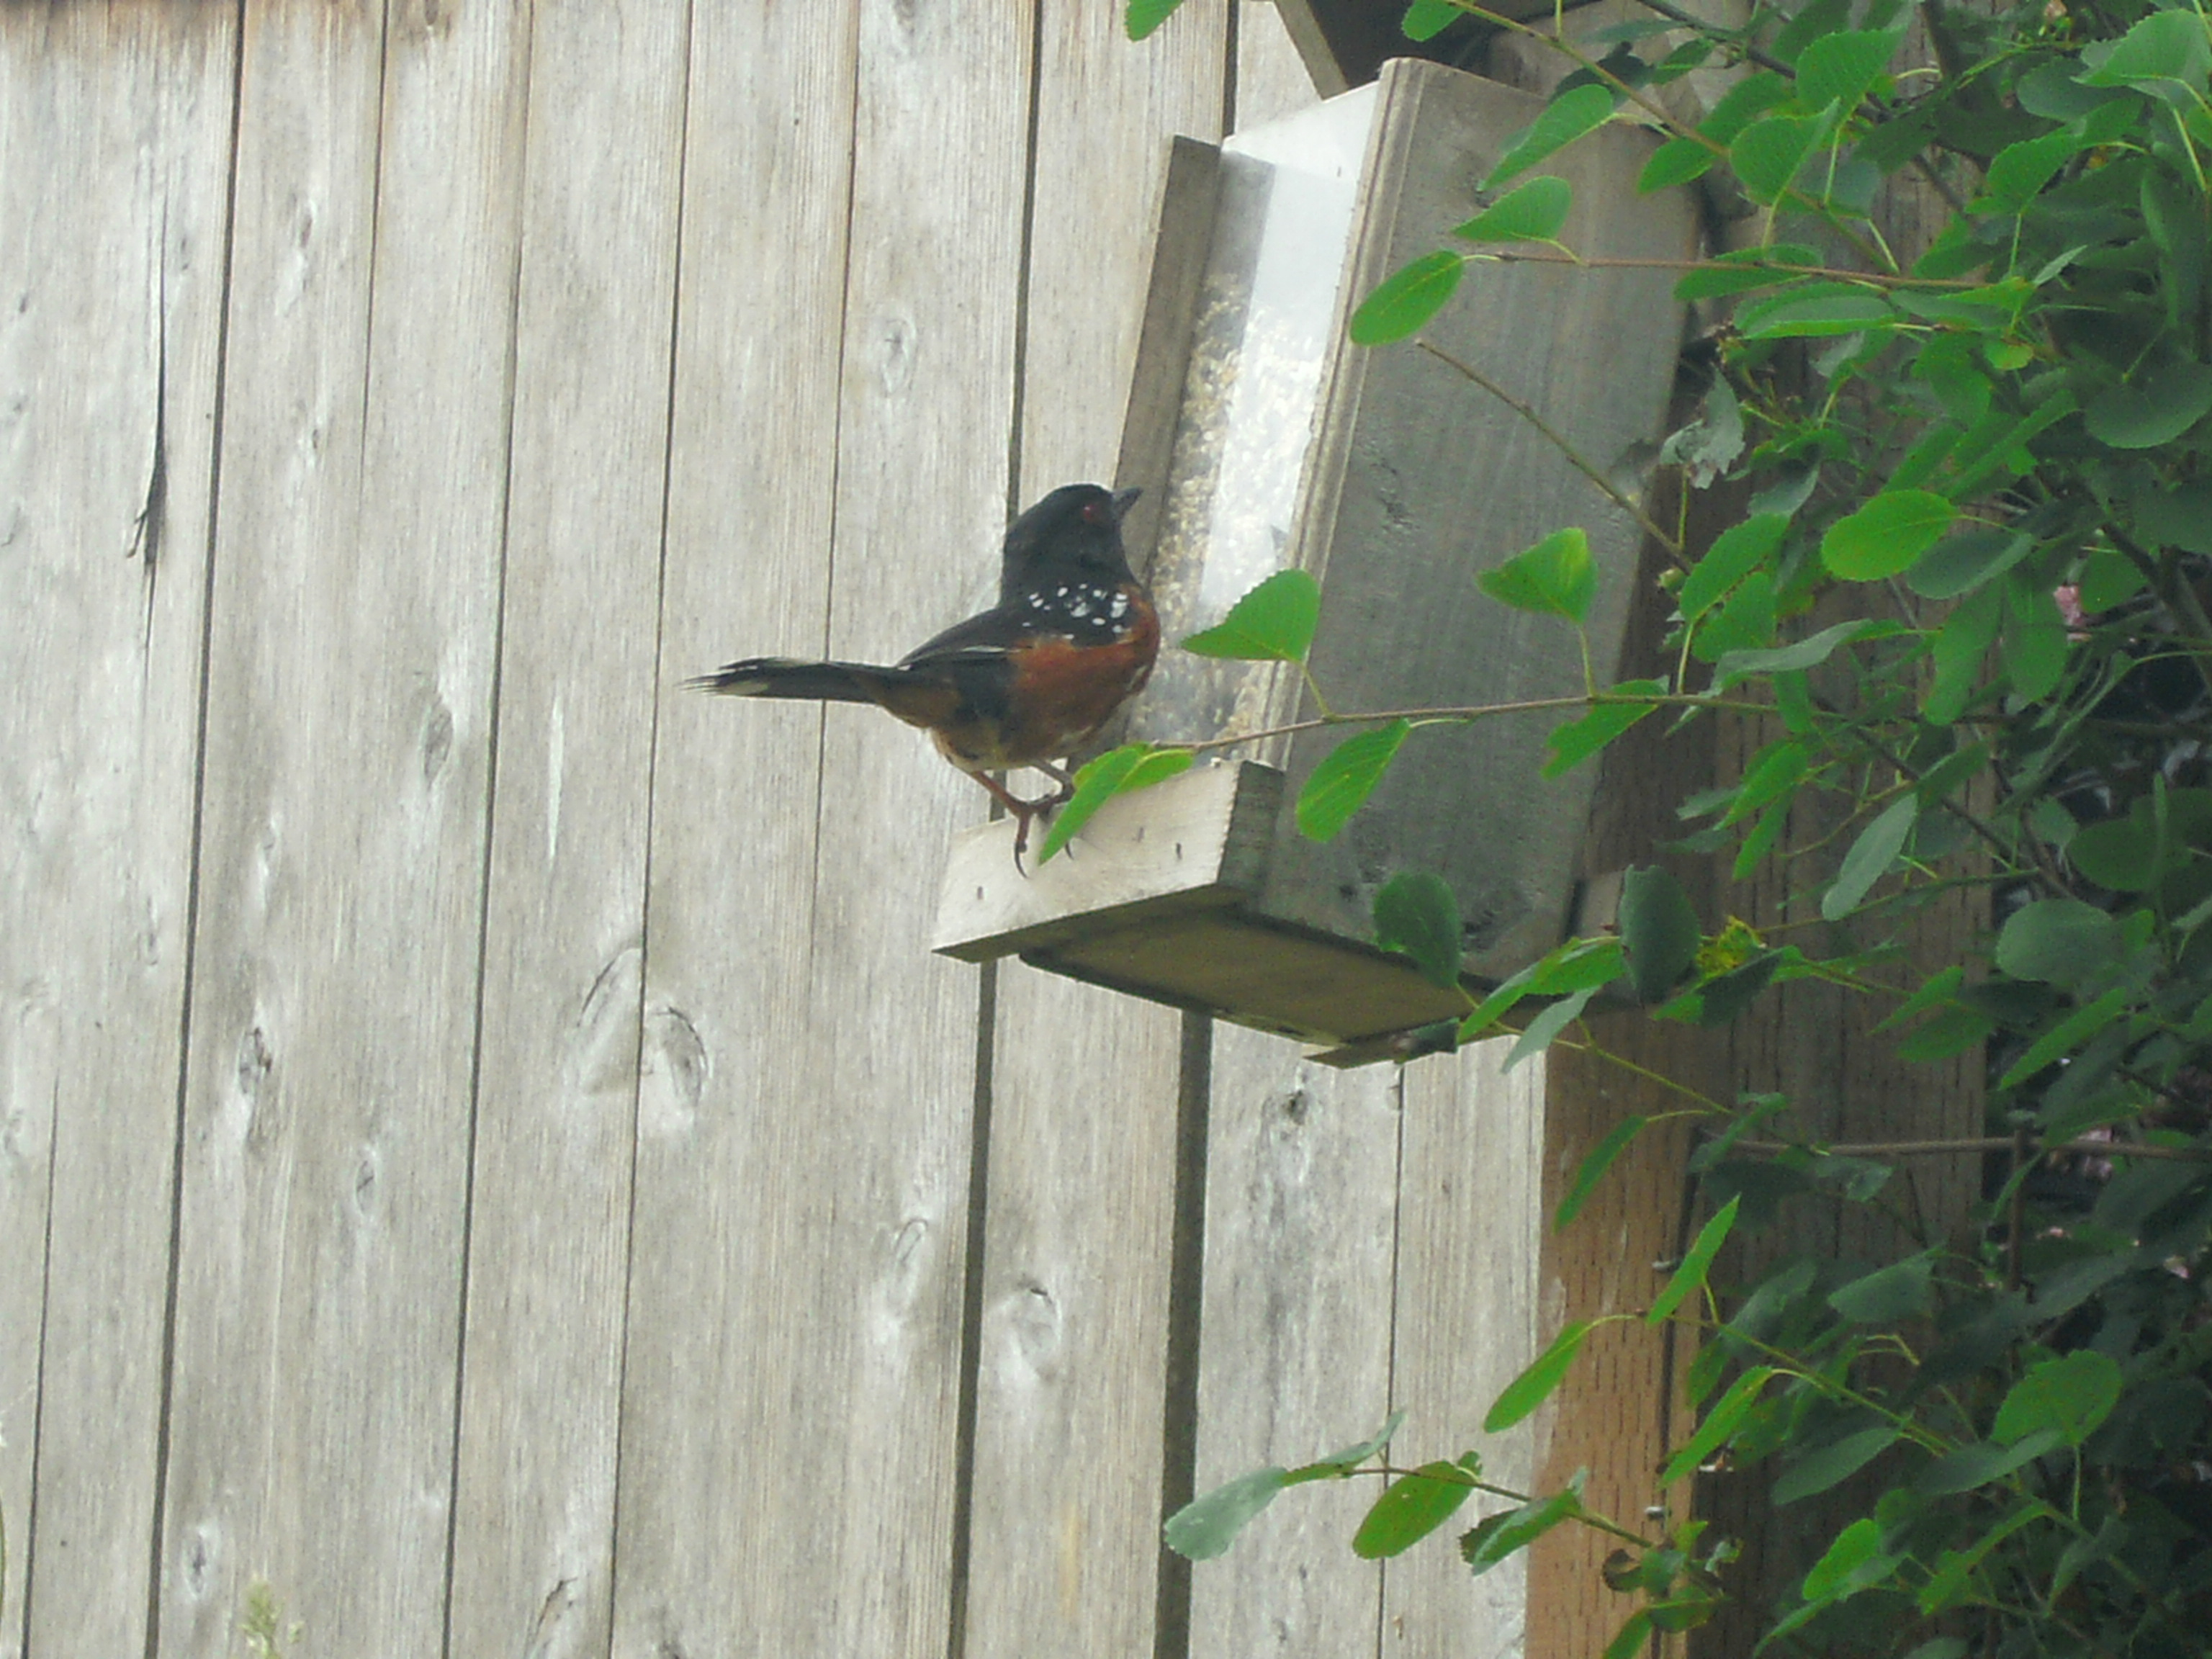 A Spotted Towhee at my seed feeder